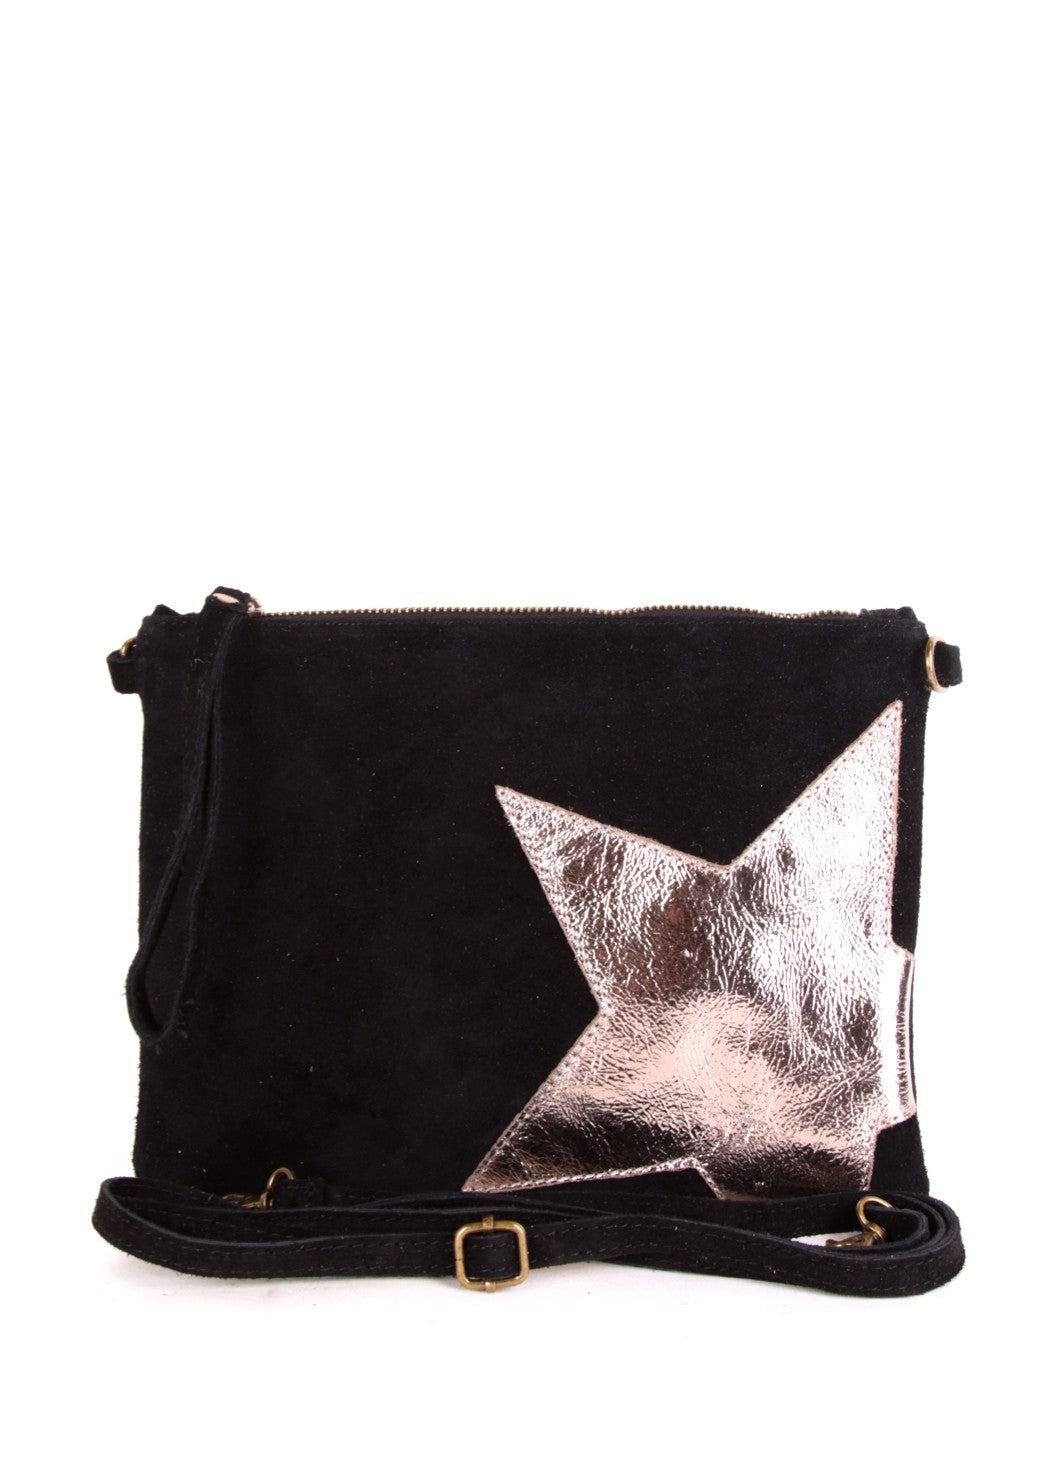 STELLA - Suede Star Bag - SOLD OUT